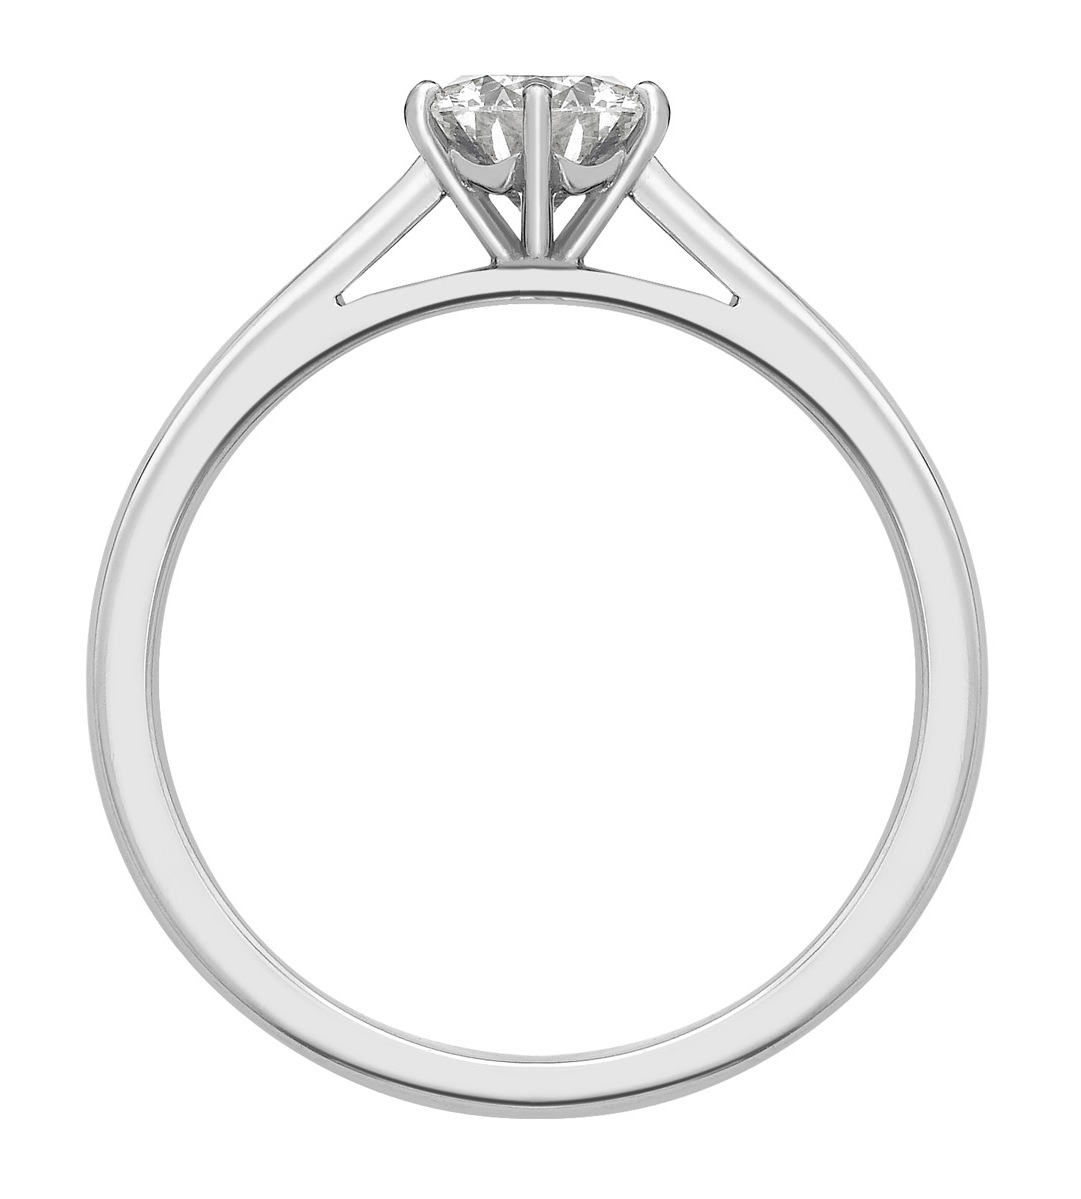 Round Six Claw White Gold Engagement Ring    GRC757 Image 2